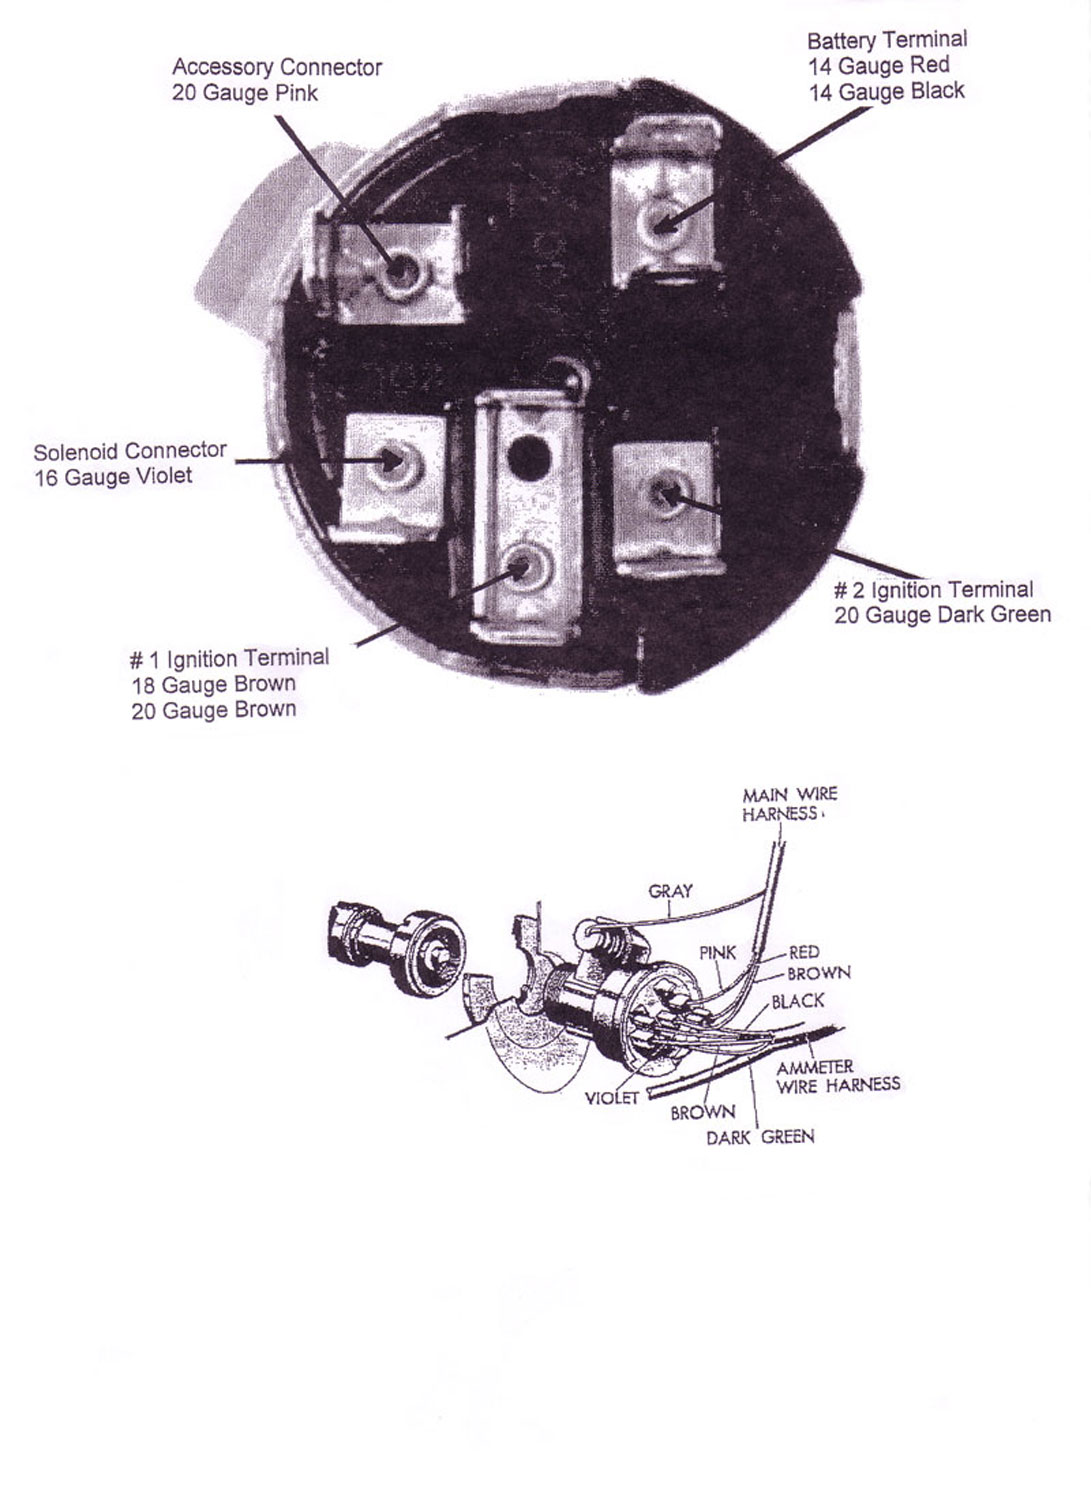 1955 Chevrolet Ignition Switch Wiring Diagram - Wiring Diagram